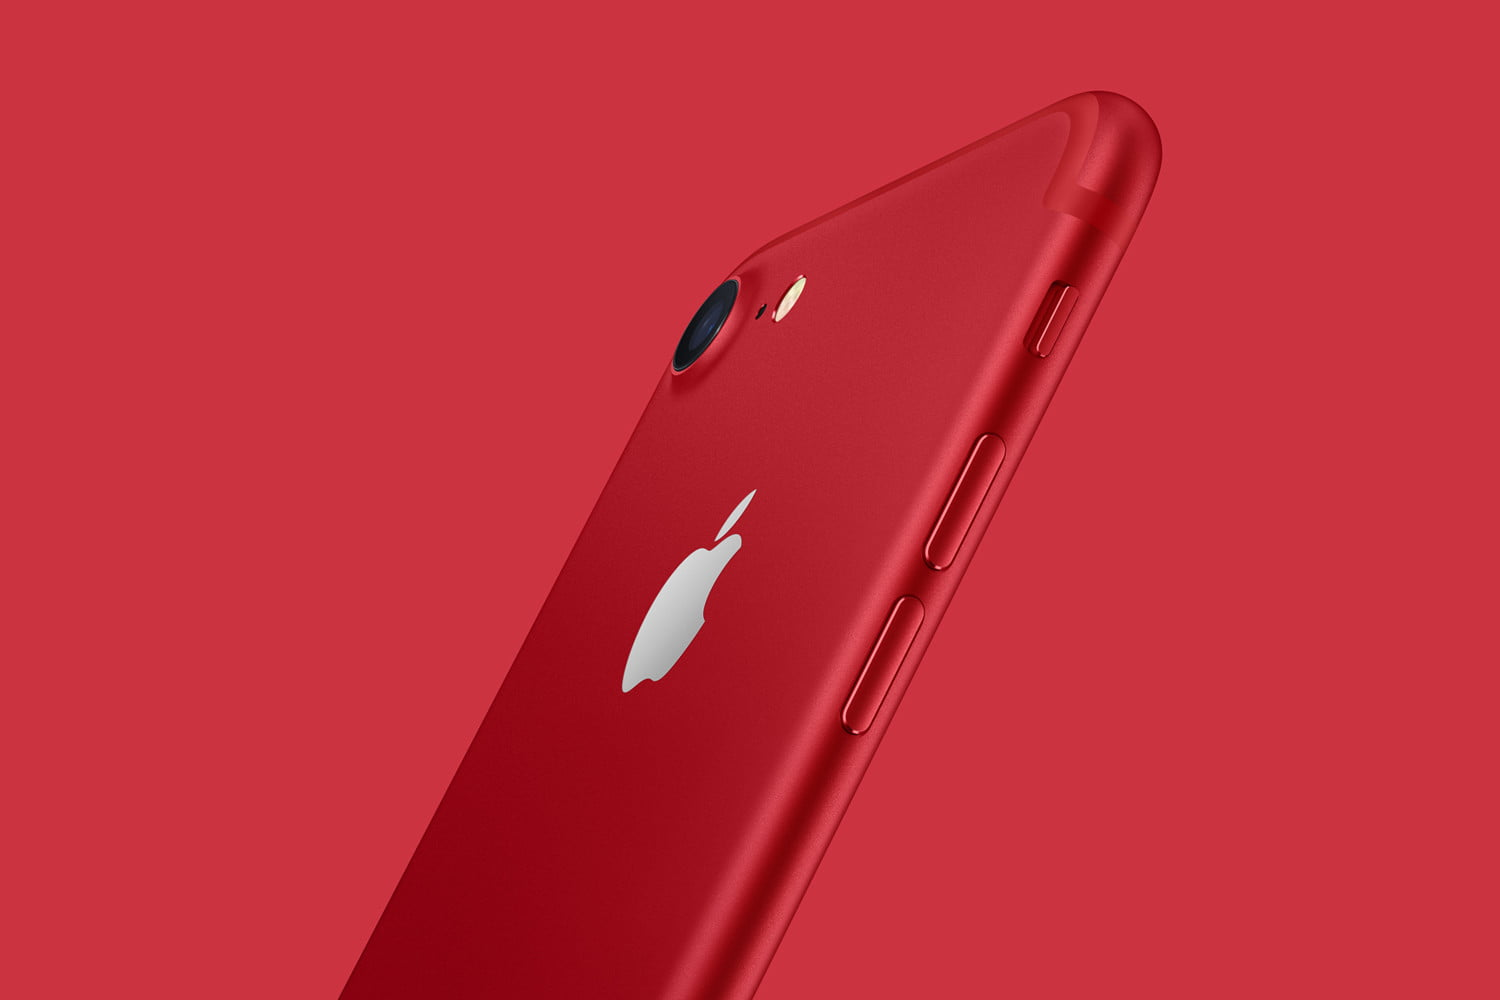 apple iphone red product onred